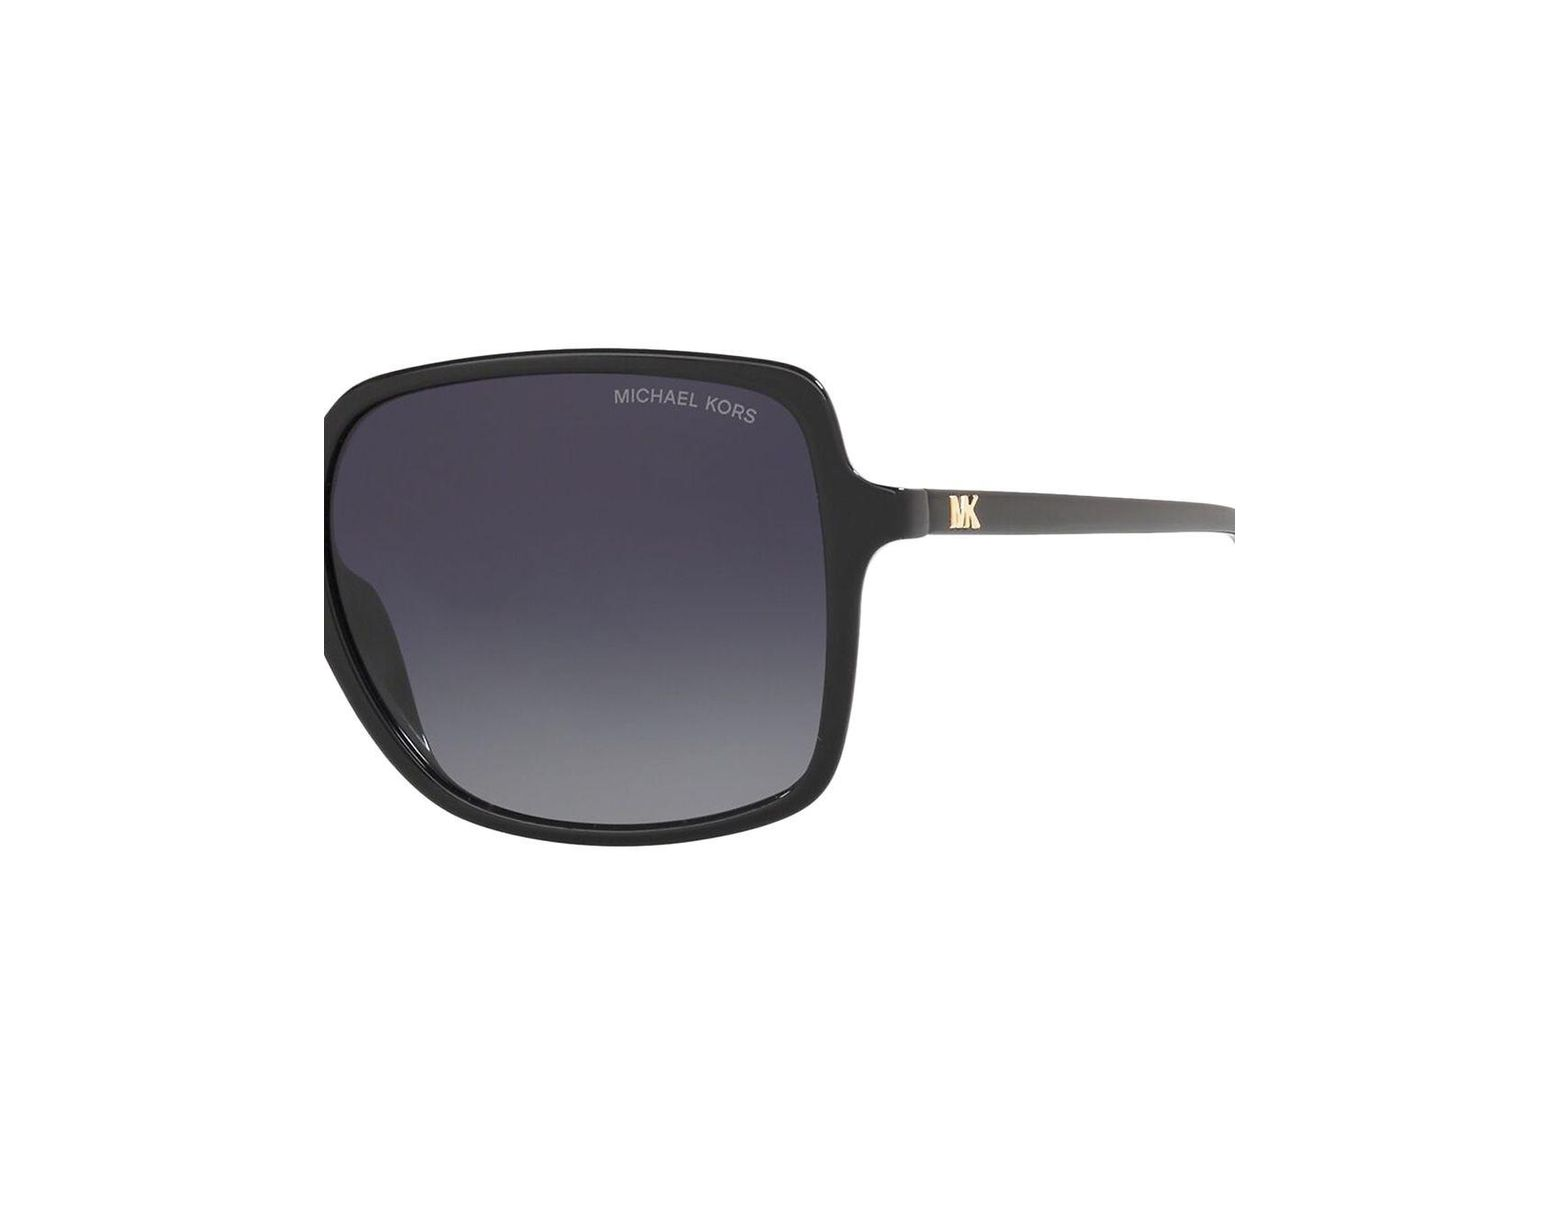 cd8f655e5a39 Michael Kors Glam Isle Of Palms 56mm Polarized Square Sunglasses in Black -  Lyst